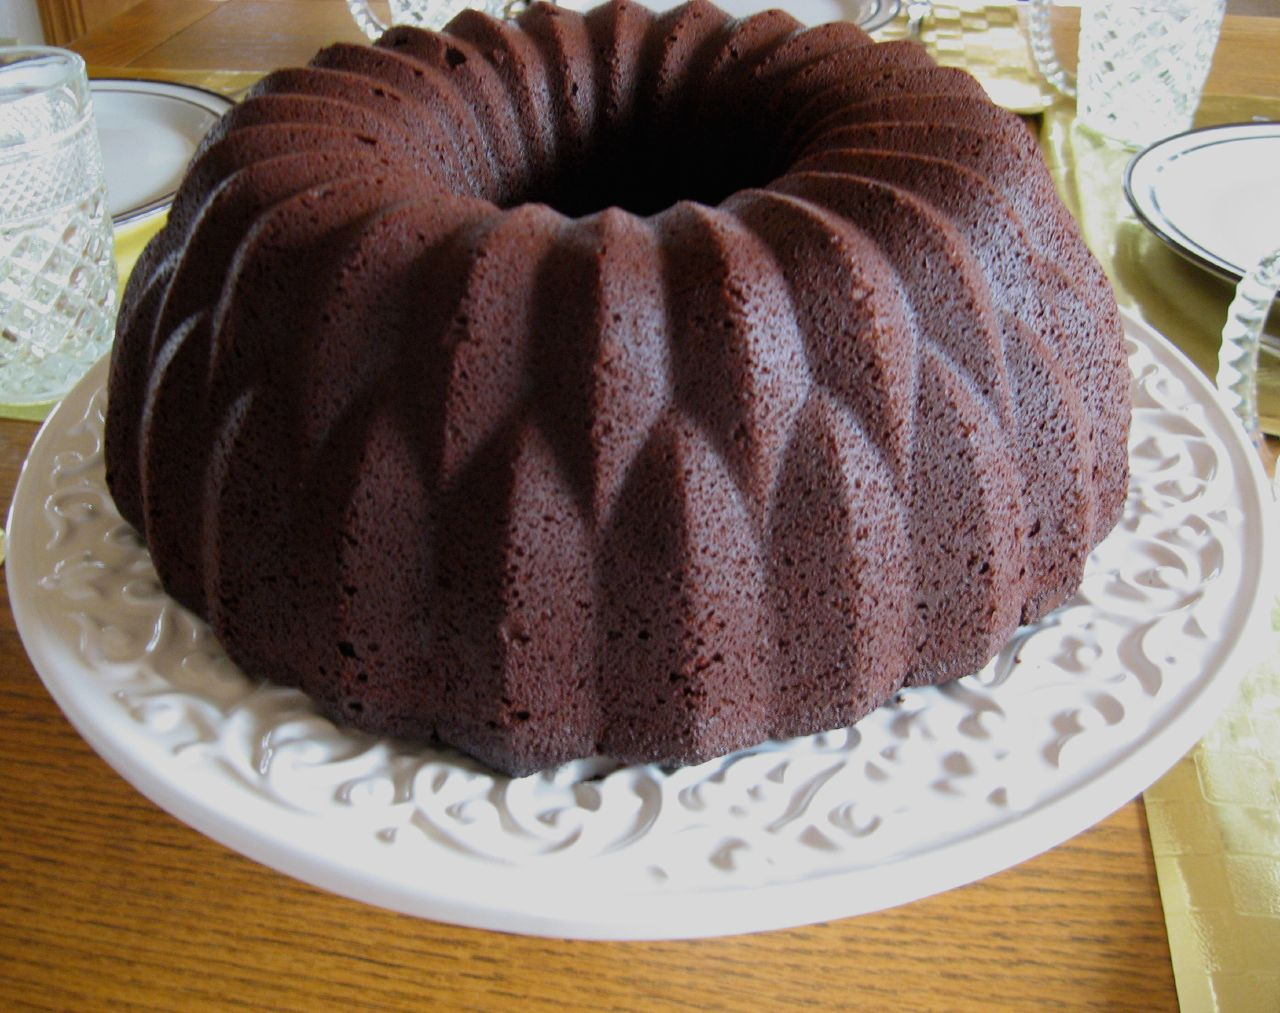 How Do I Make A Bundt Cake